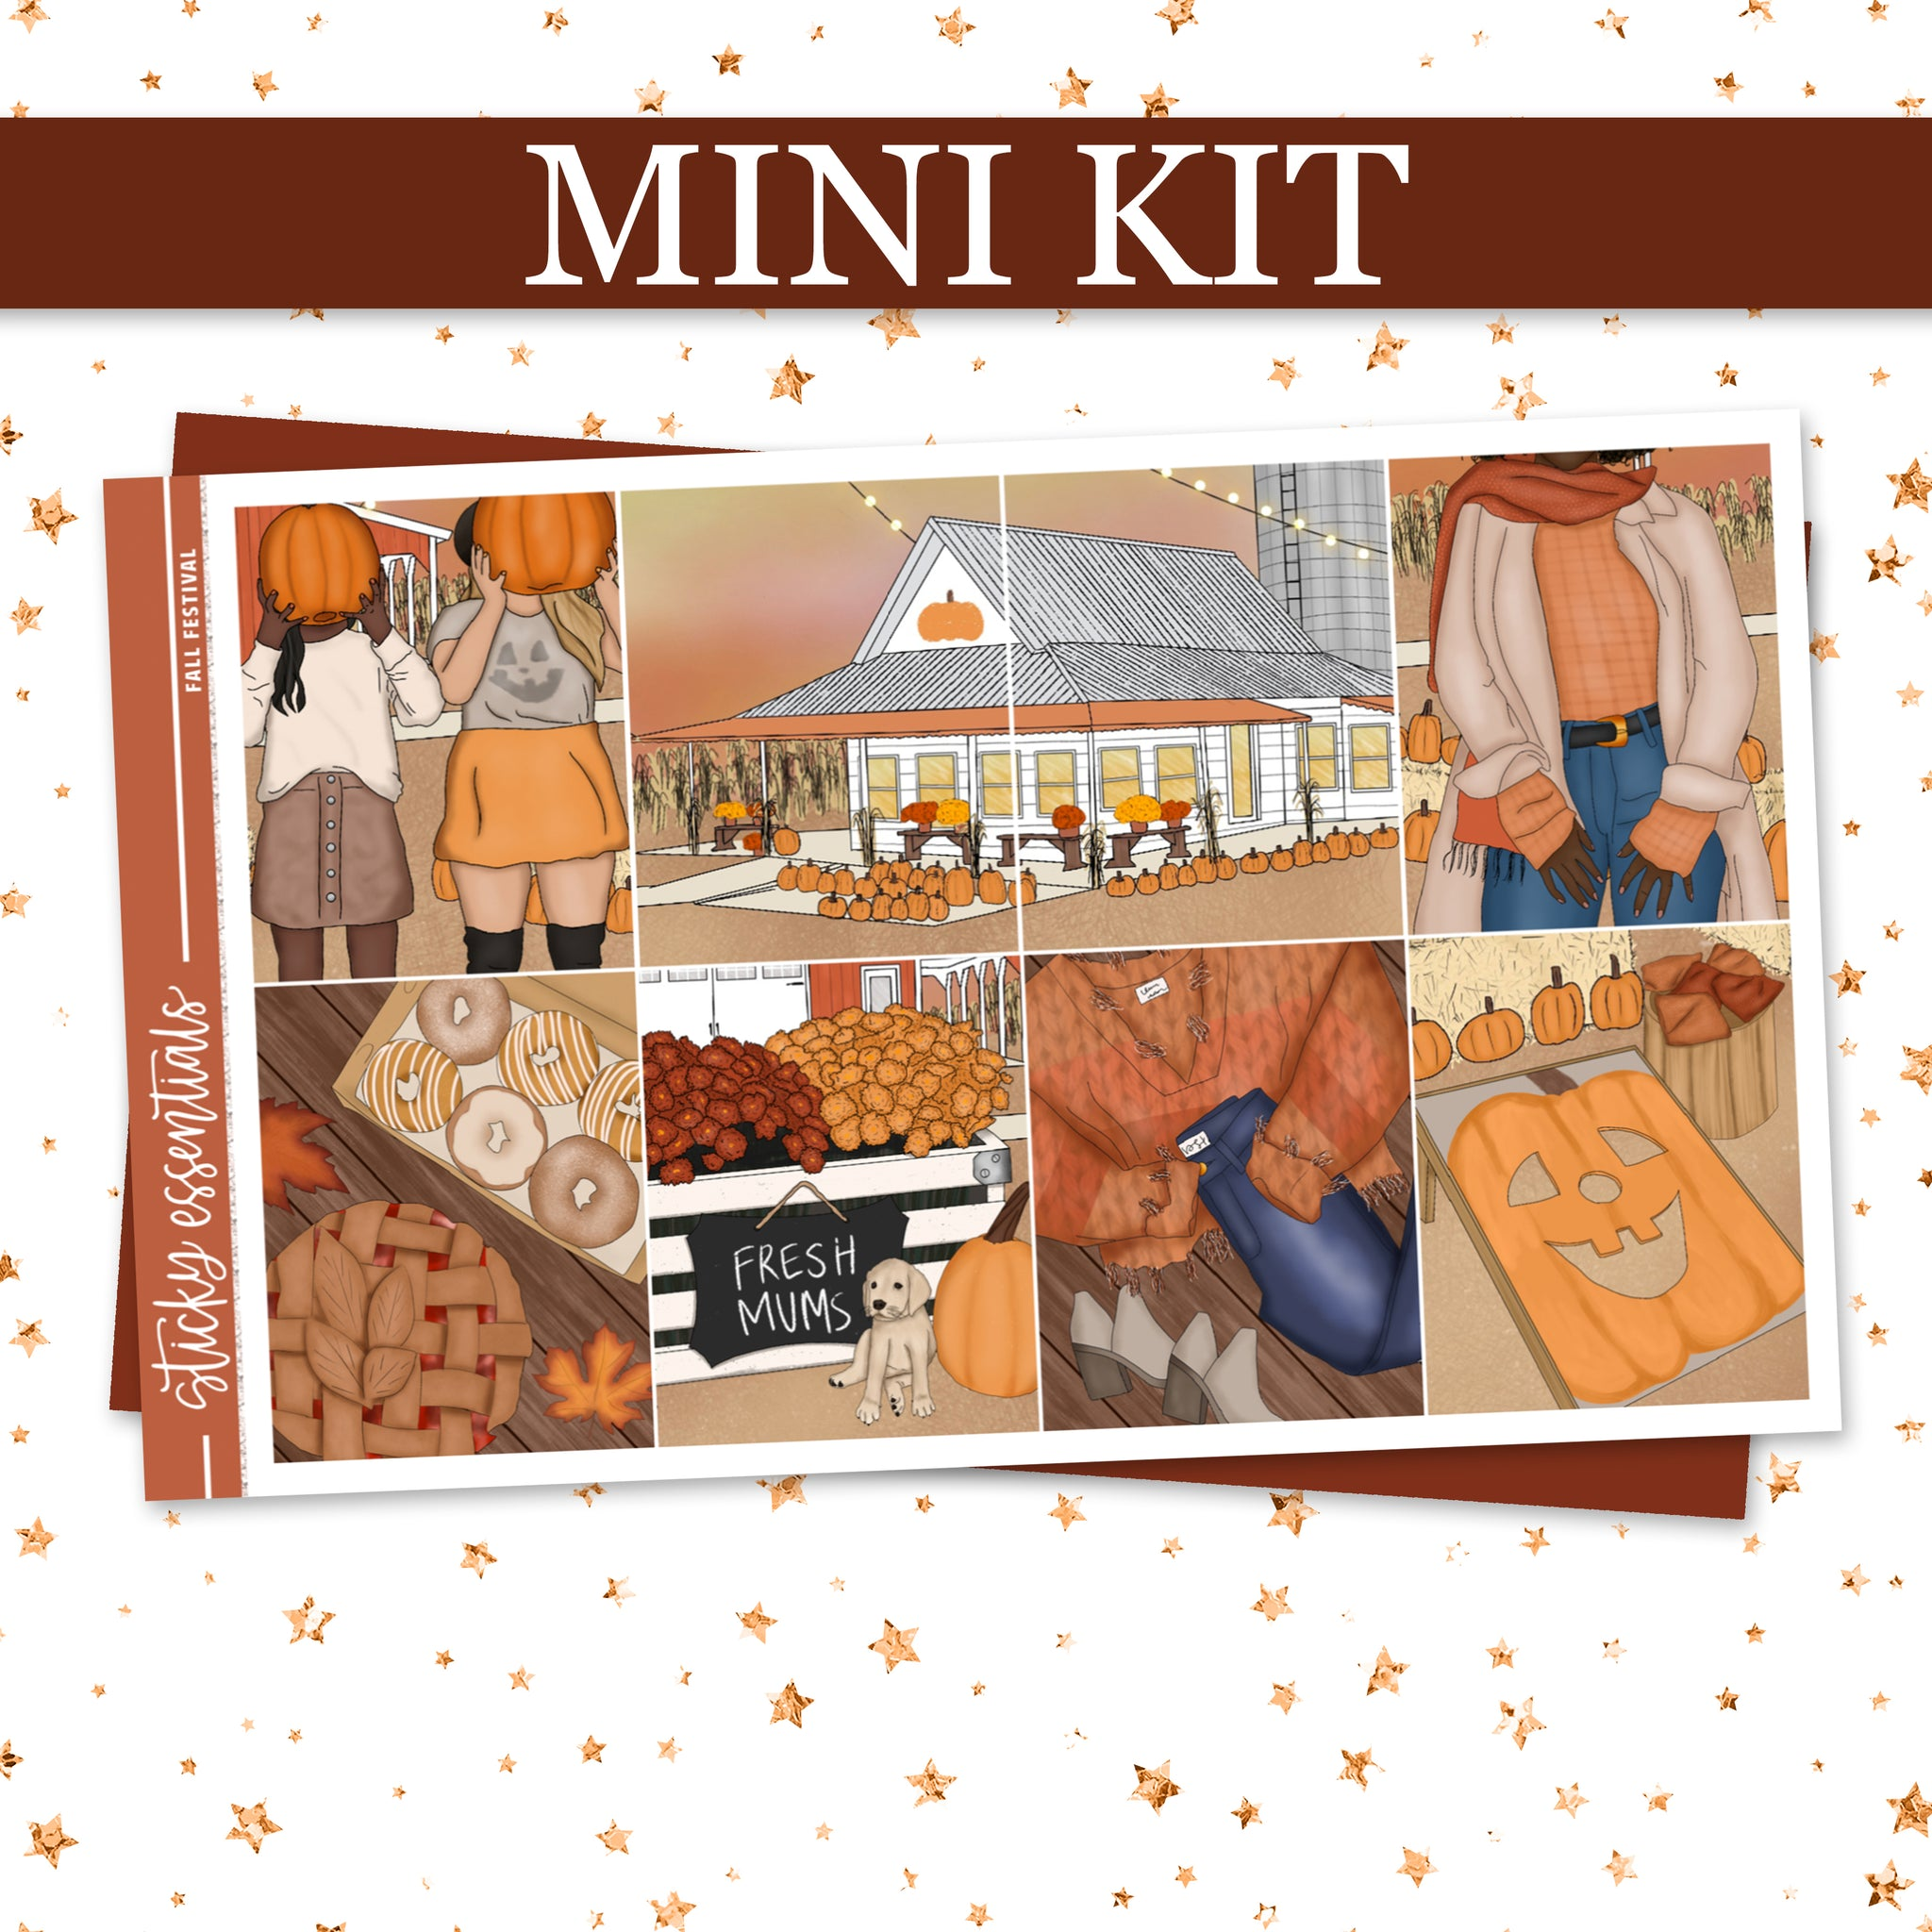 Fall Festival // Mini Kit